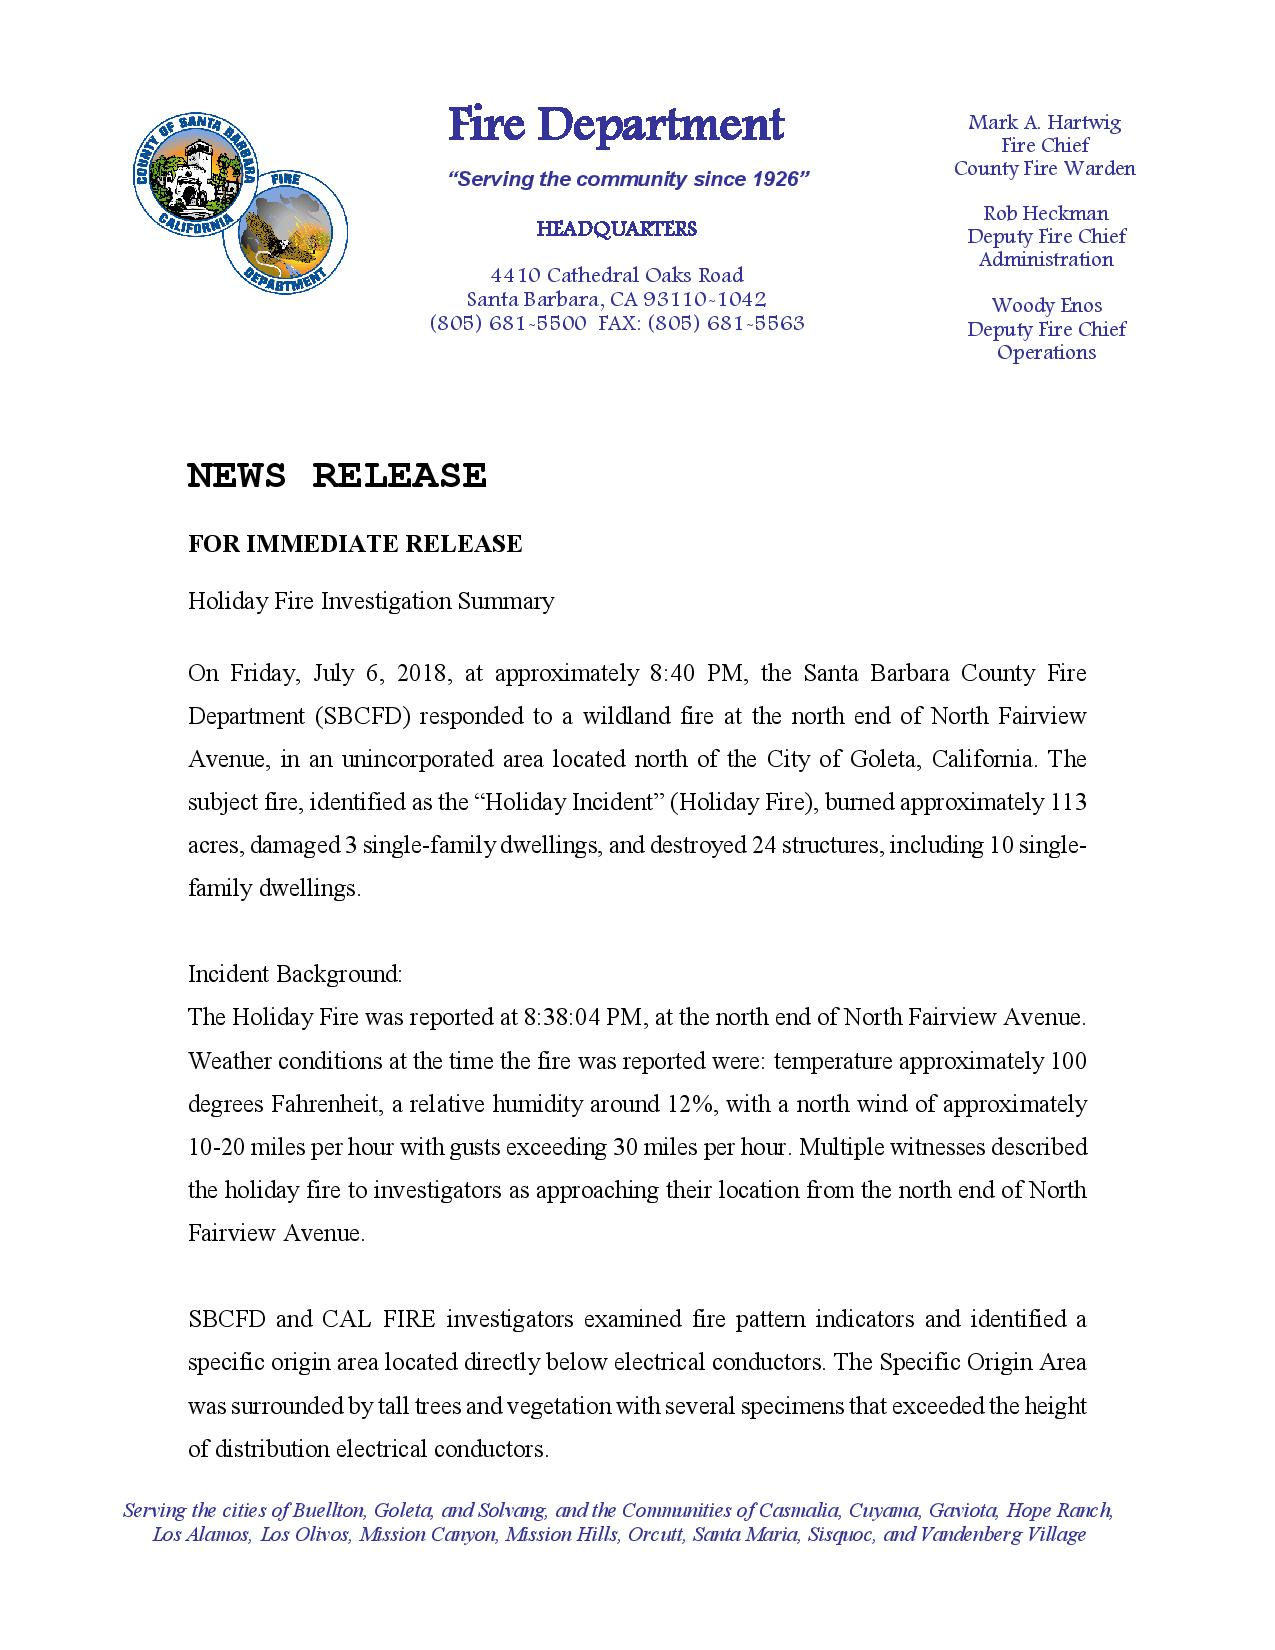 Holiday Fire Investigation Report News Release-pg1